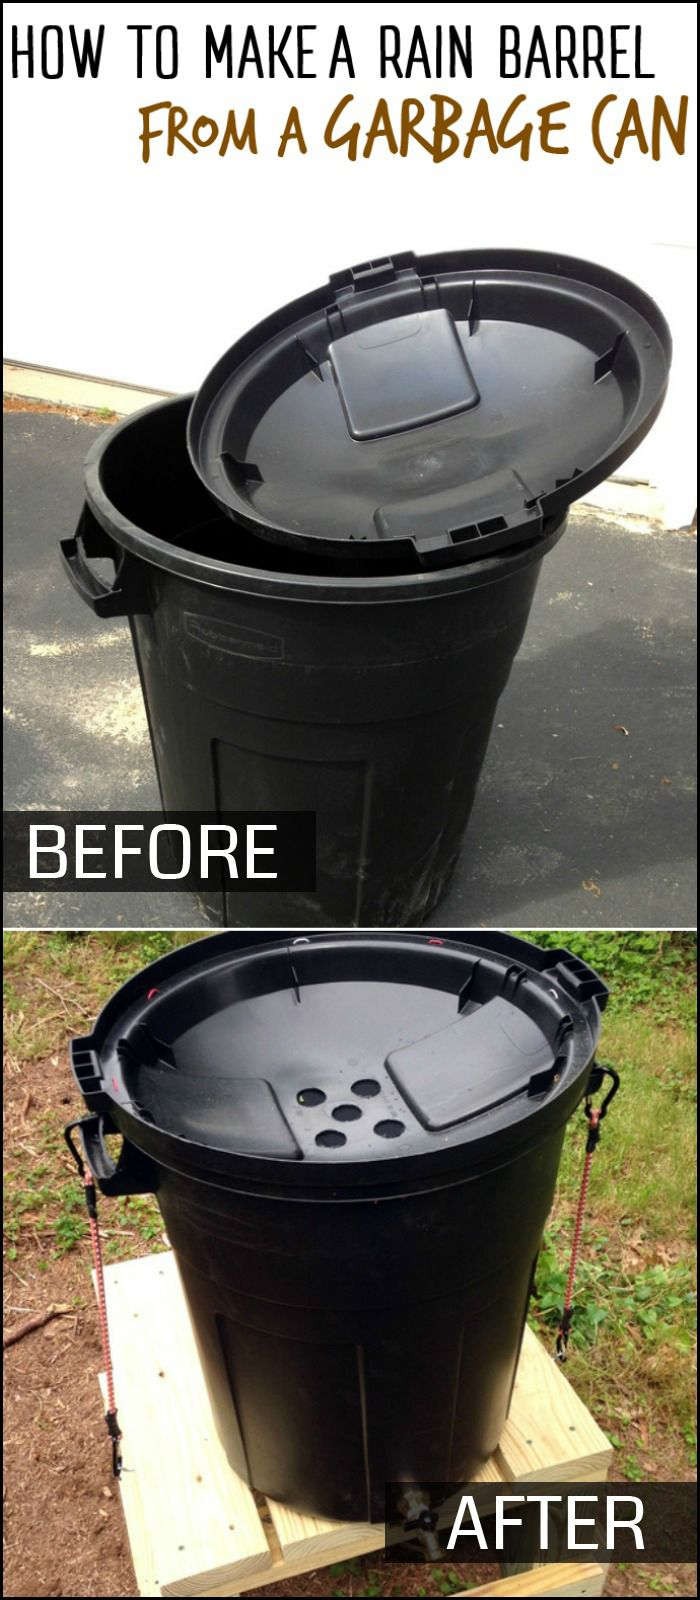 Collect rain water for your garden by turning a garbage can into a rain barrel!